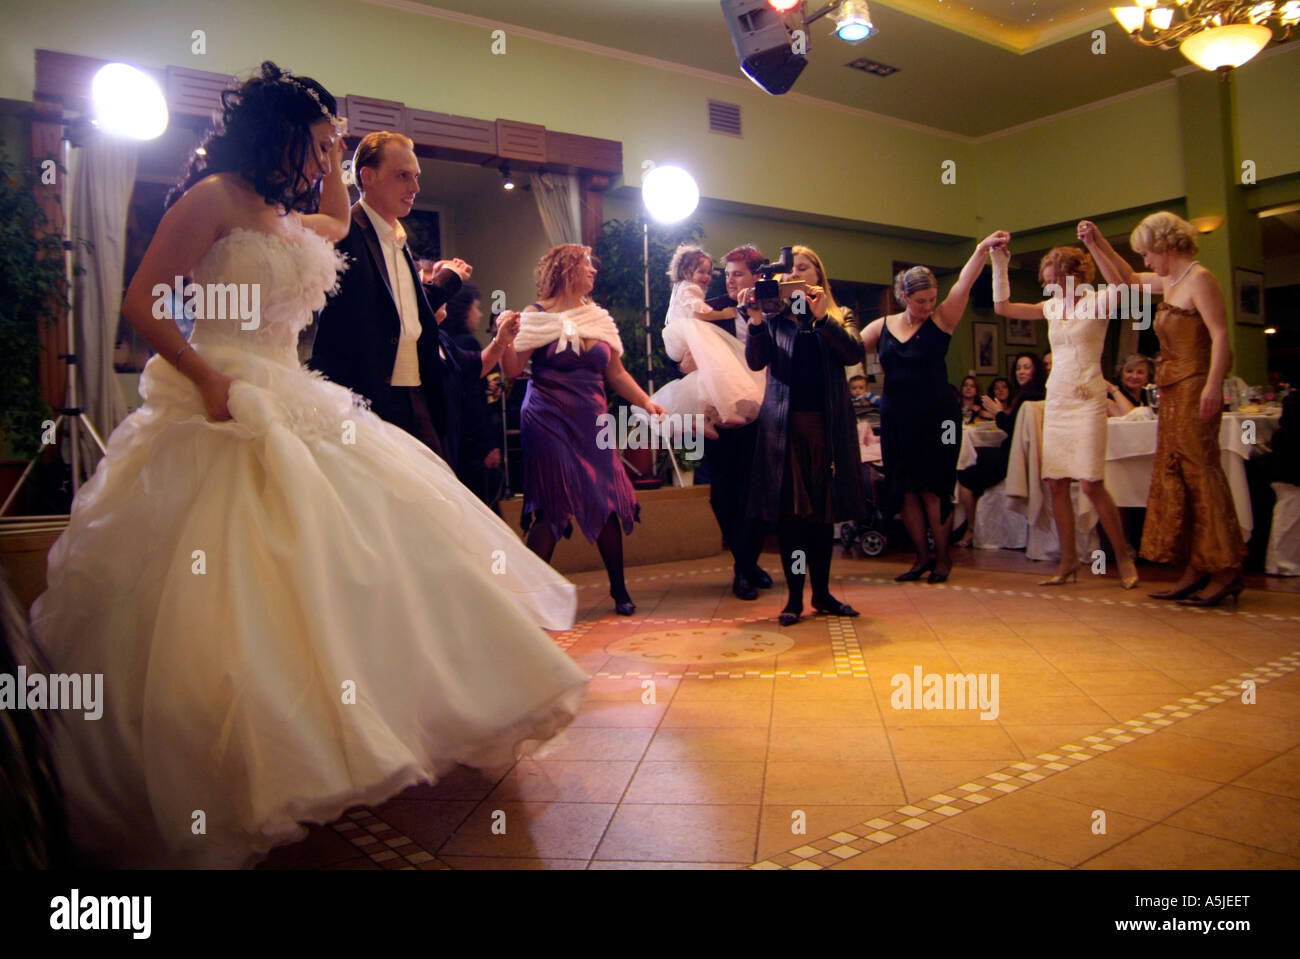 Bride And Groom Dancing At Their Wedding Reception Party Stock